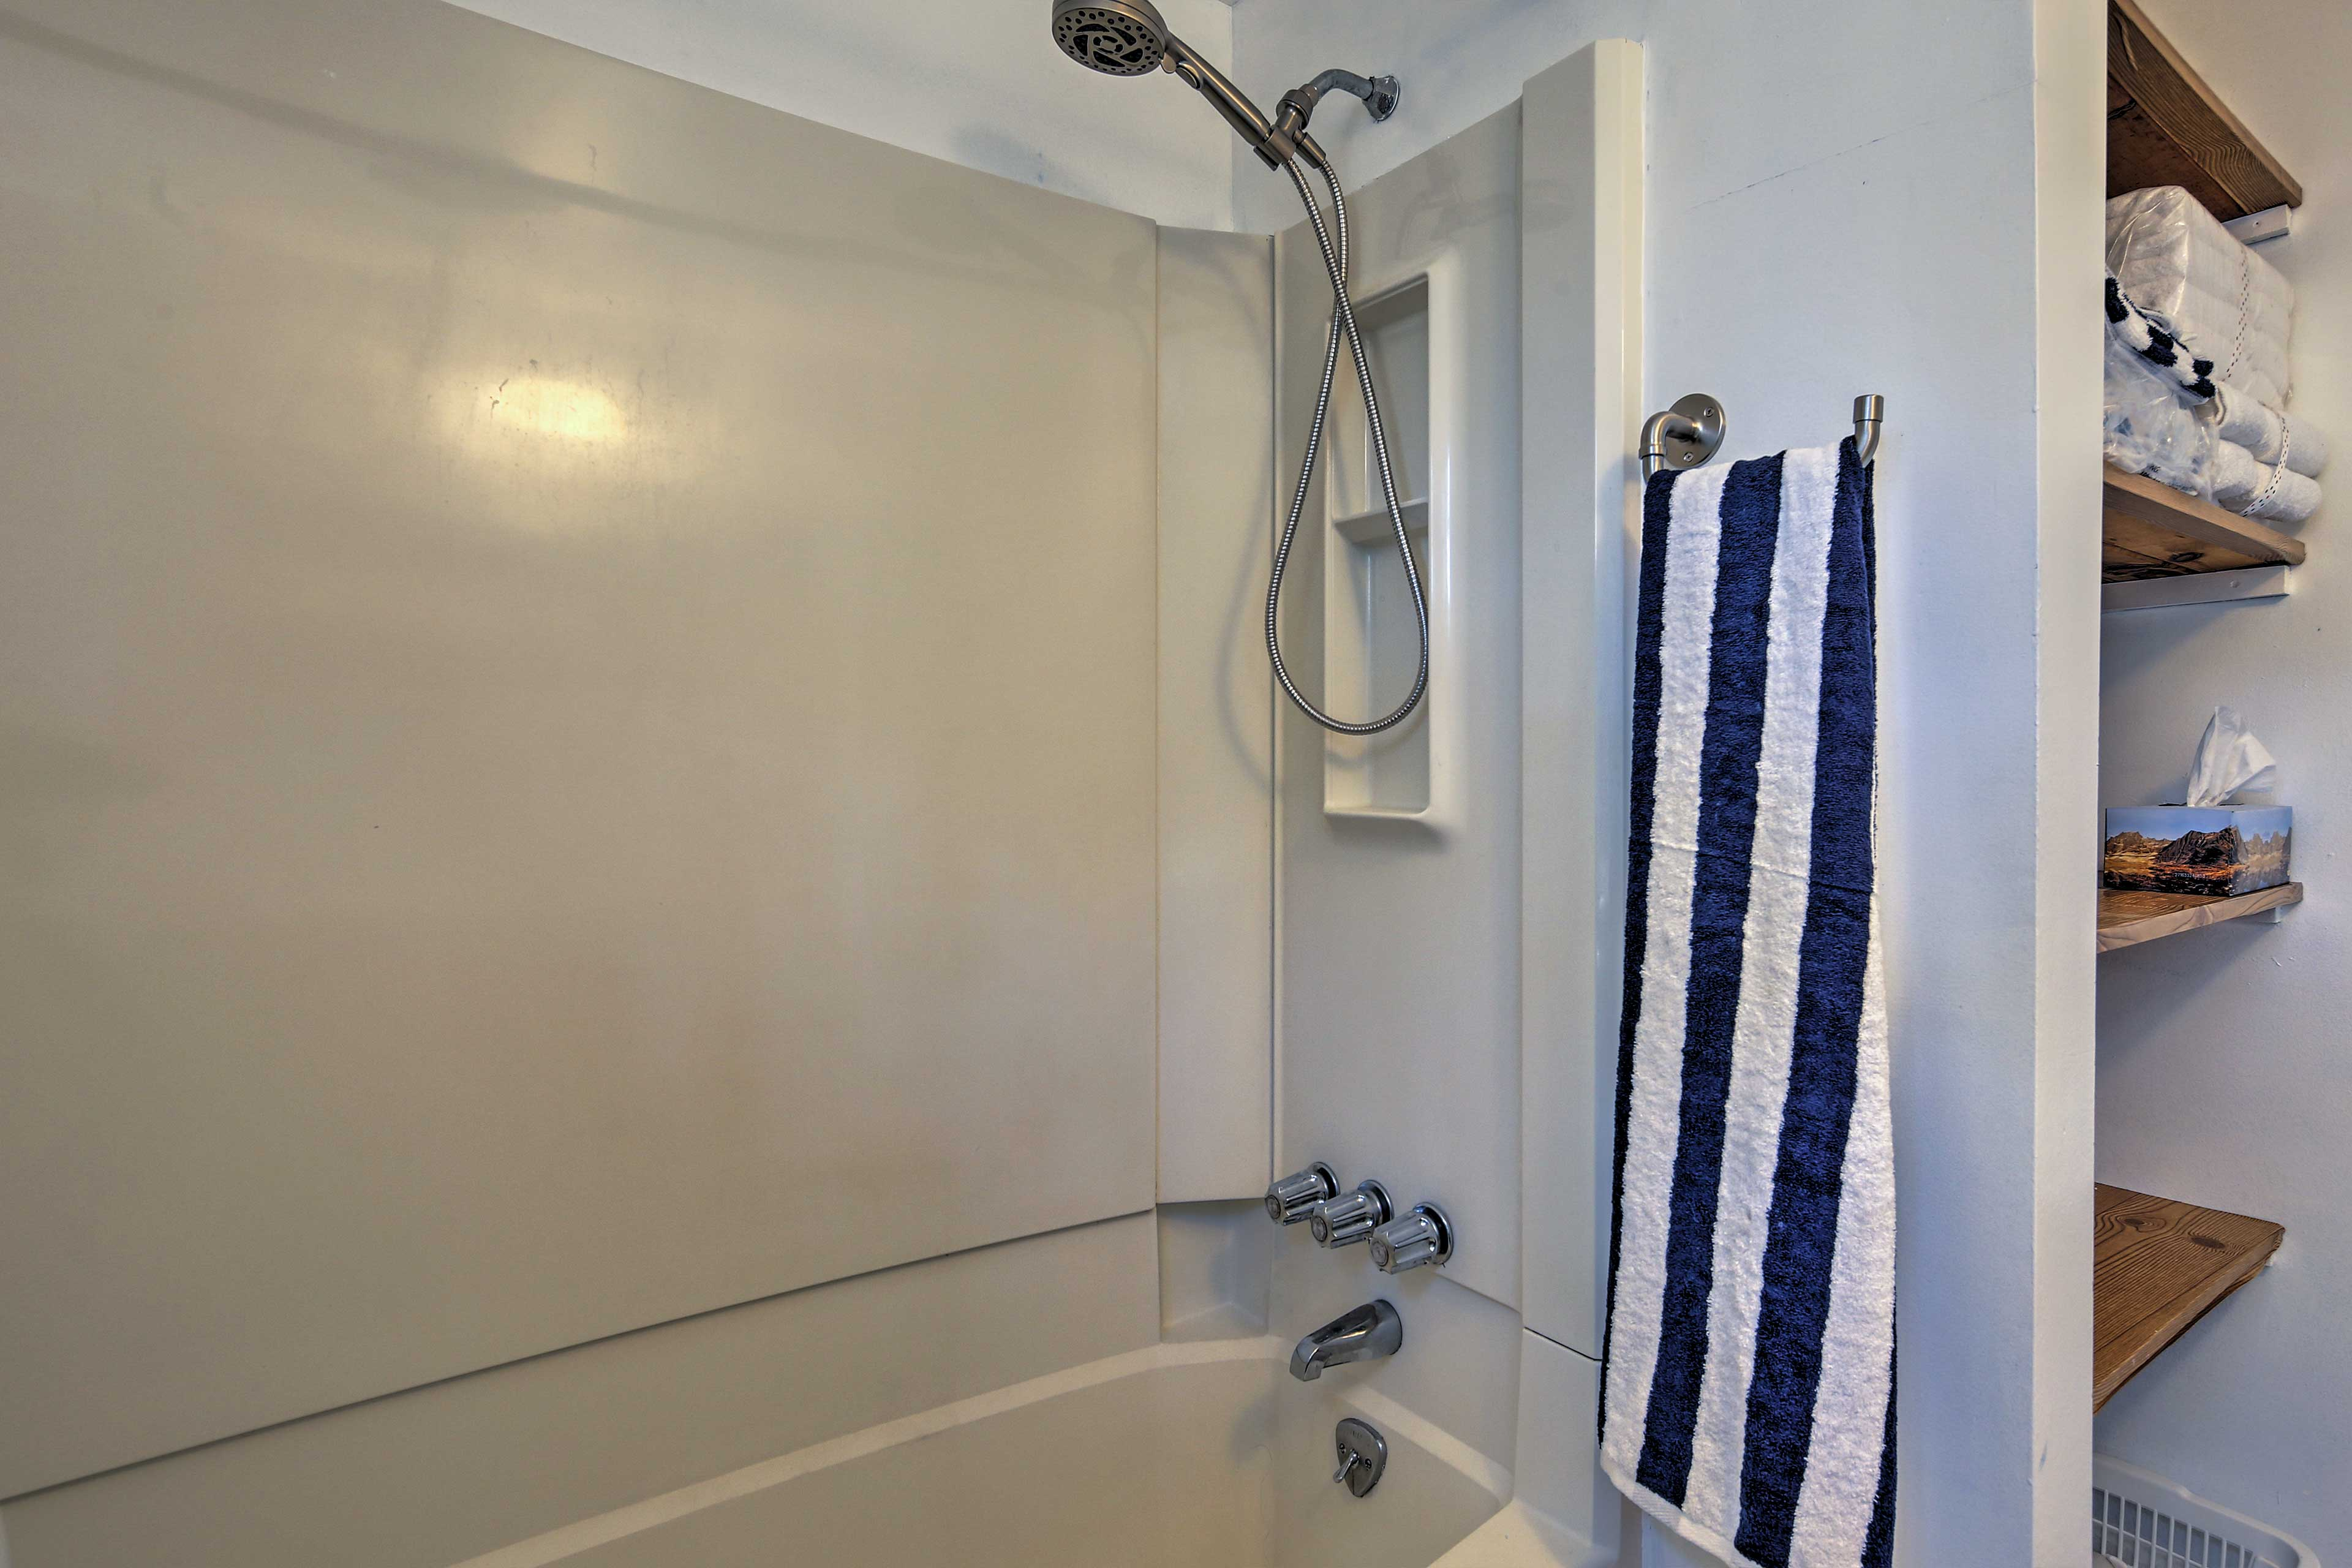 Rinse off any remaining sunscreen in the tub/shower combo.